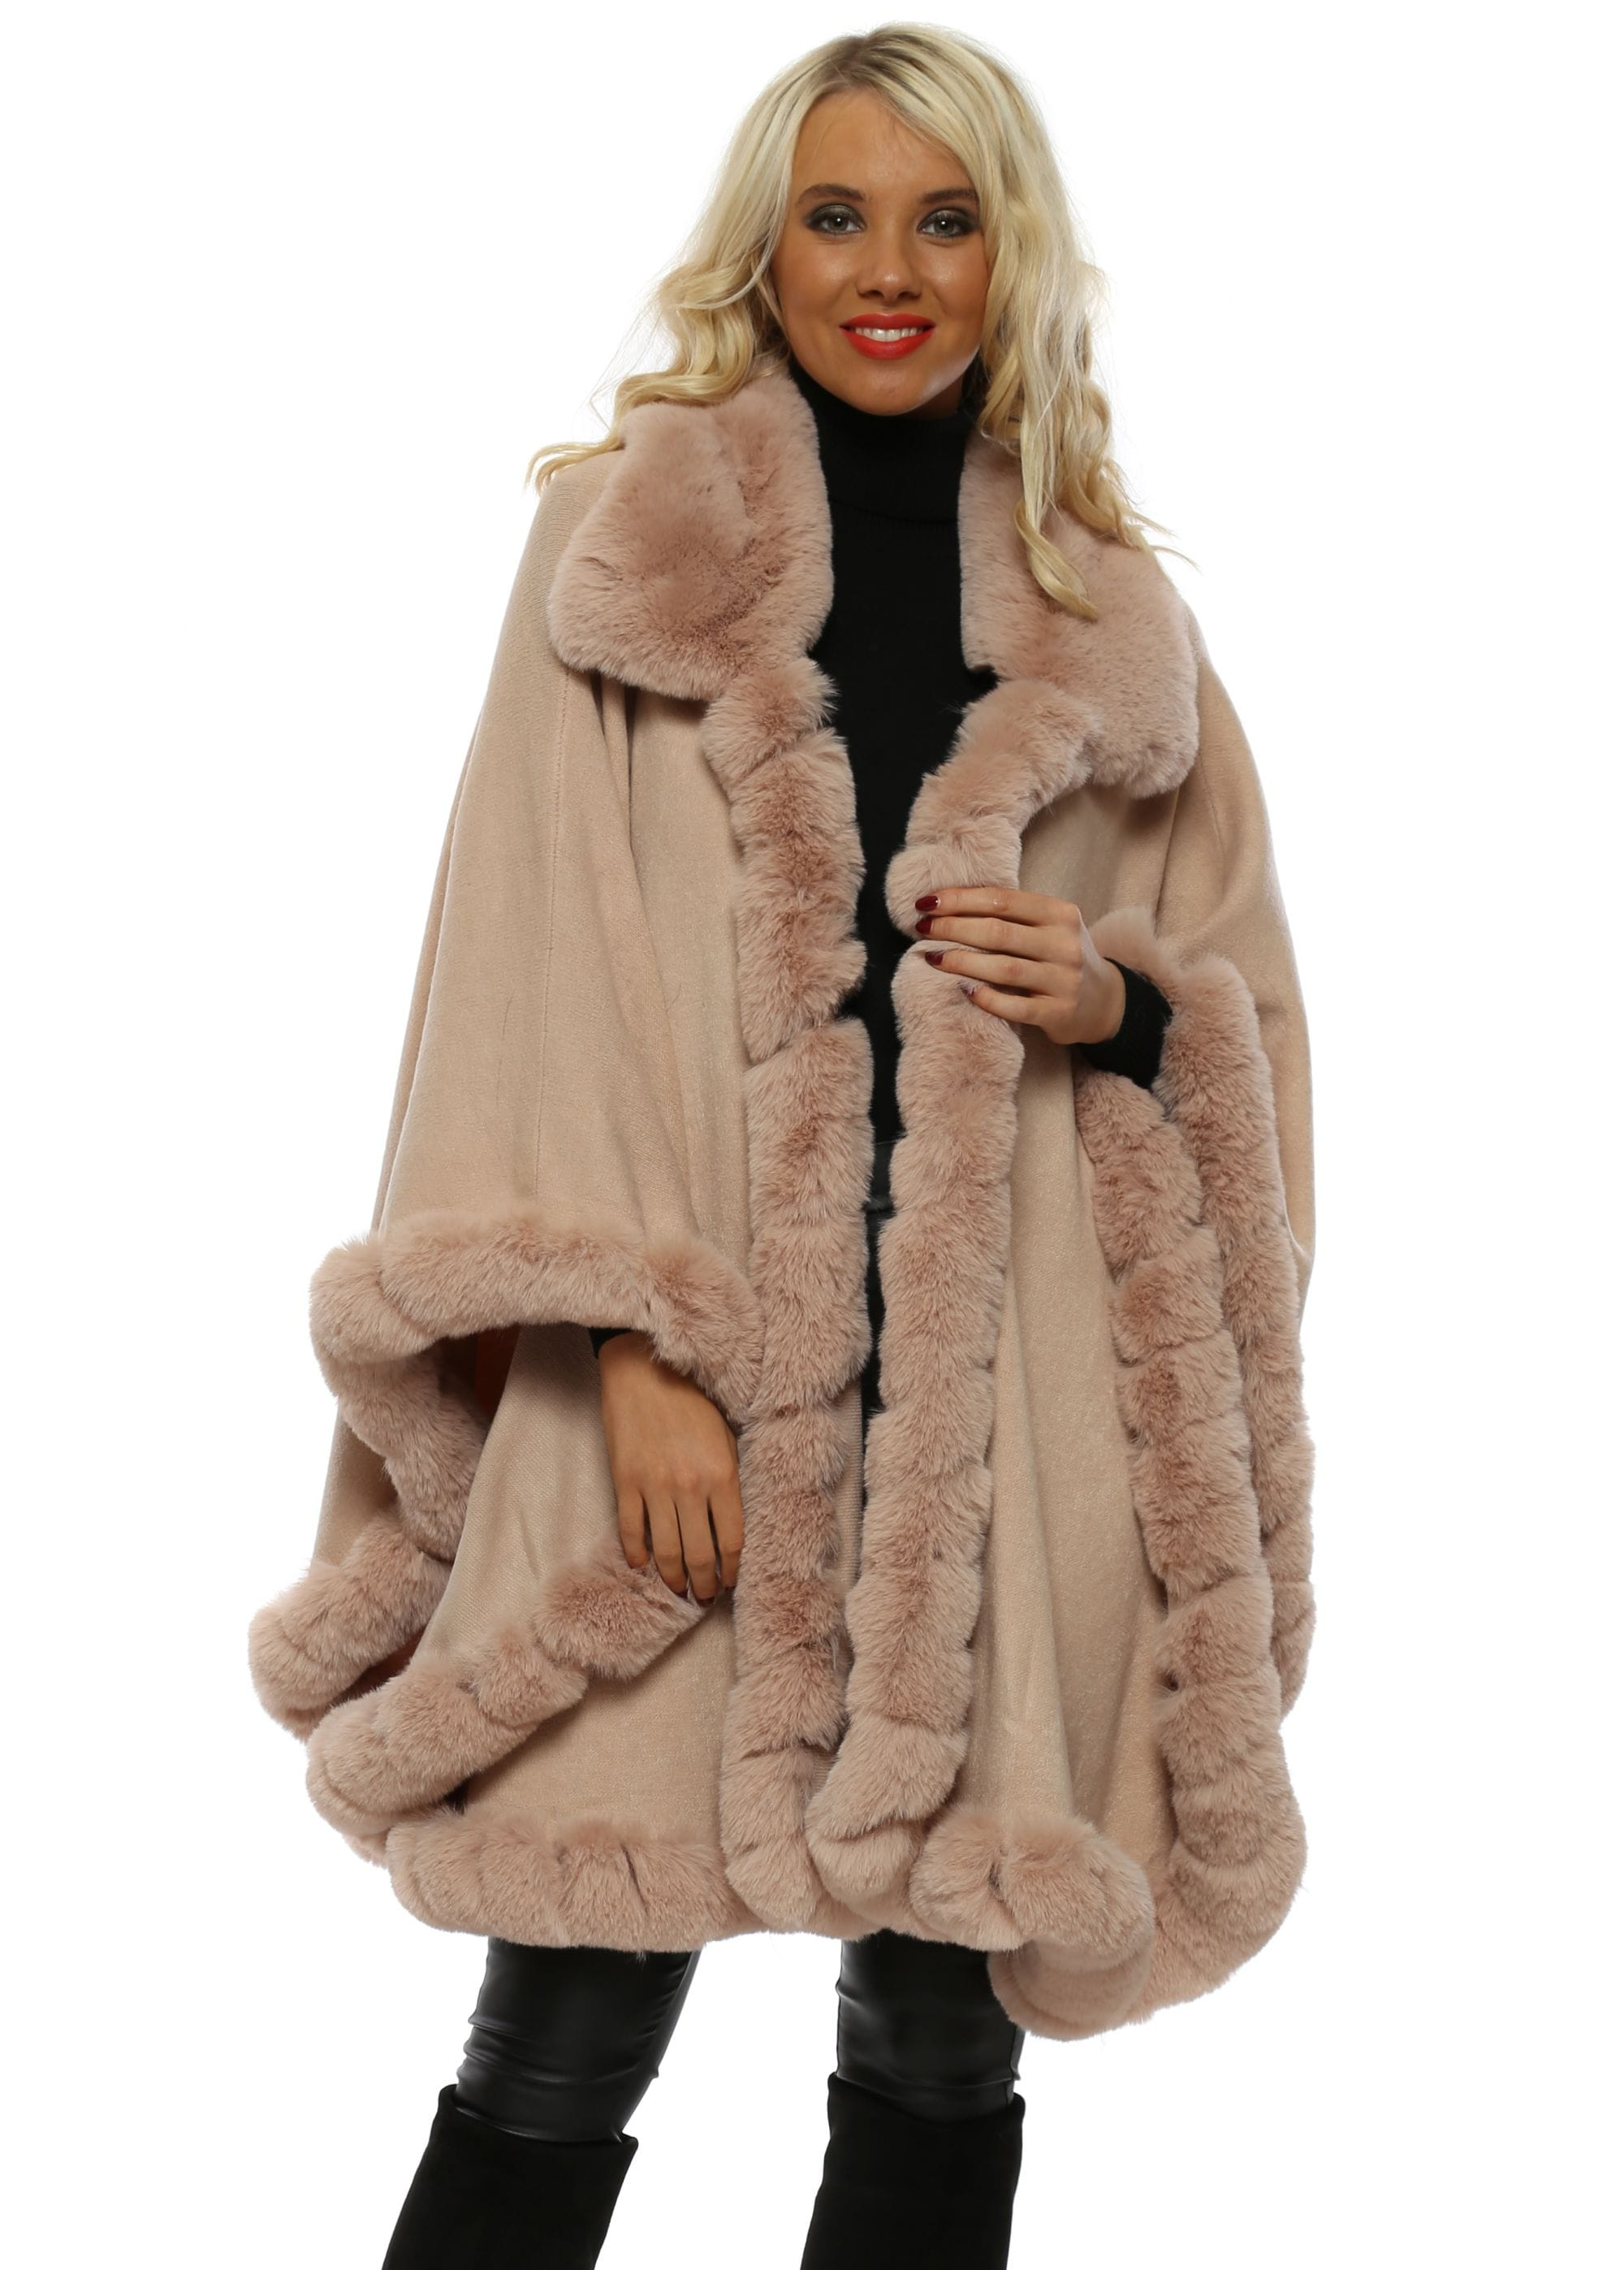 b061b9f68 Nude Knit Faux Fur Trimmed Cape